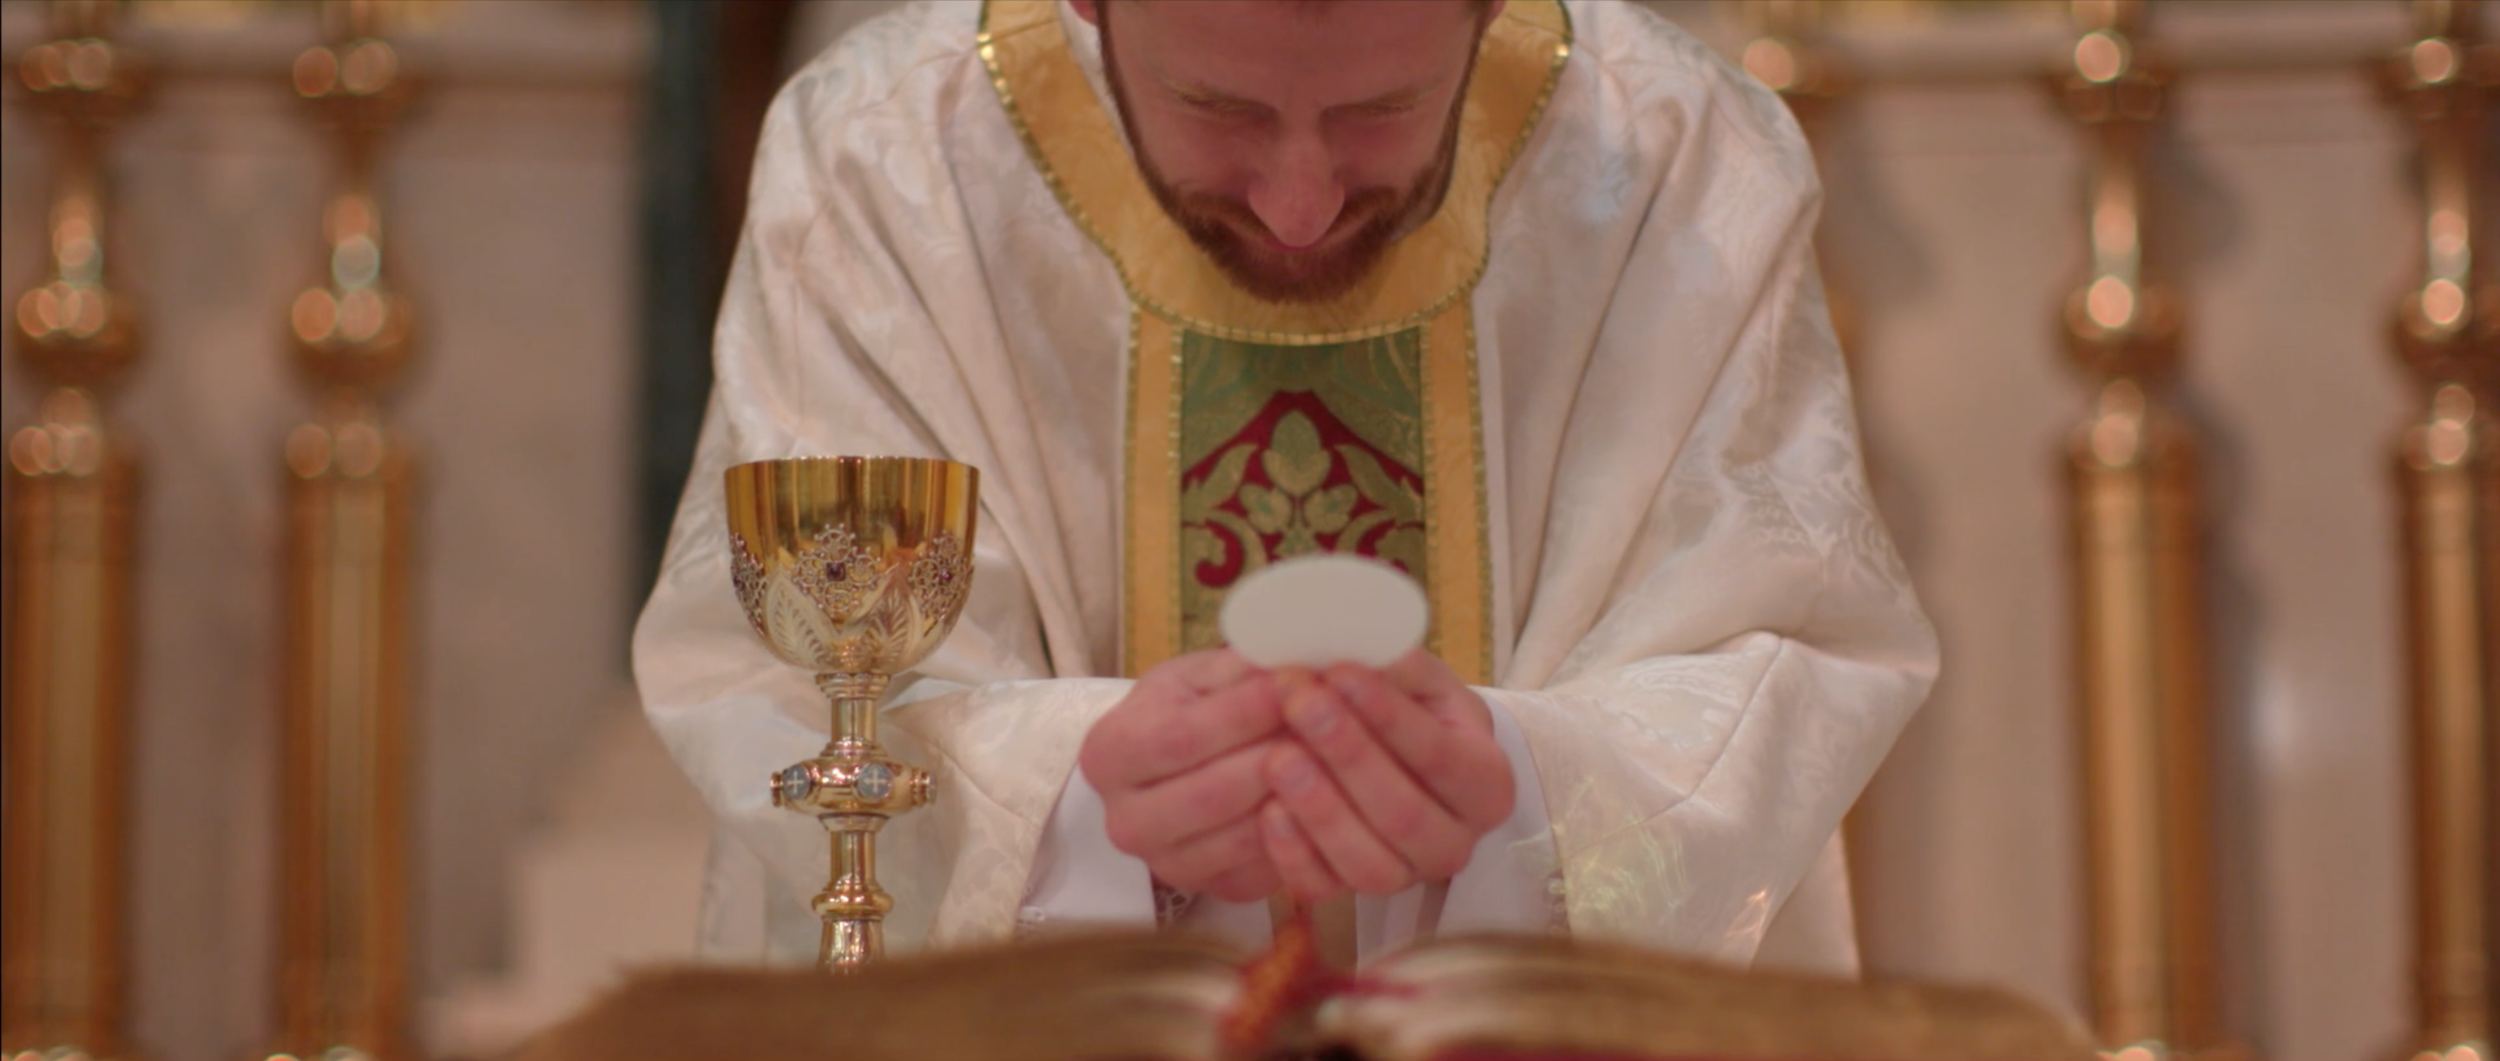 THE MASS: AN INTRODUCTION